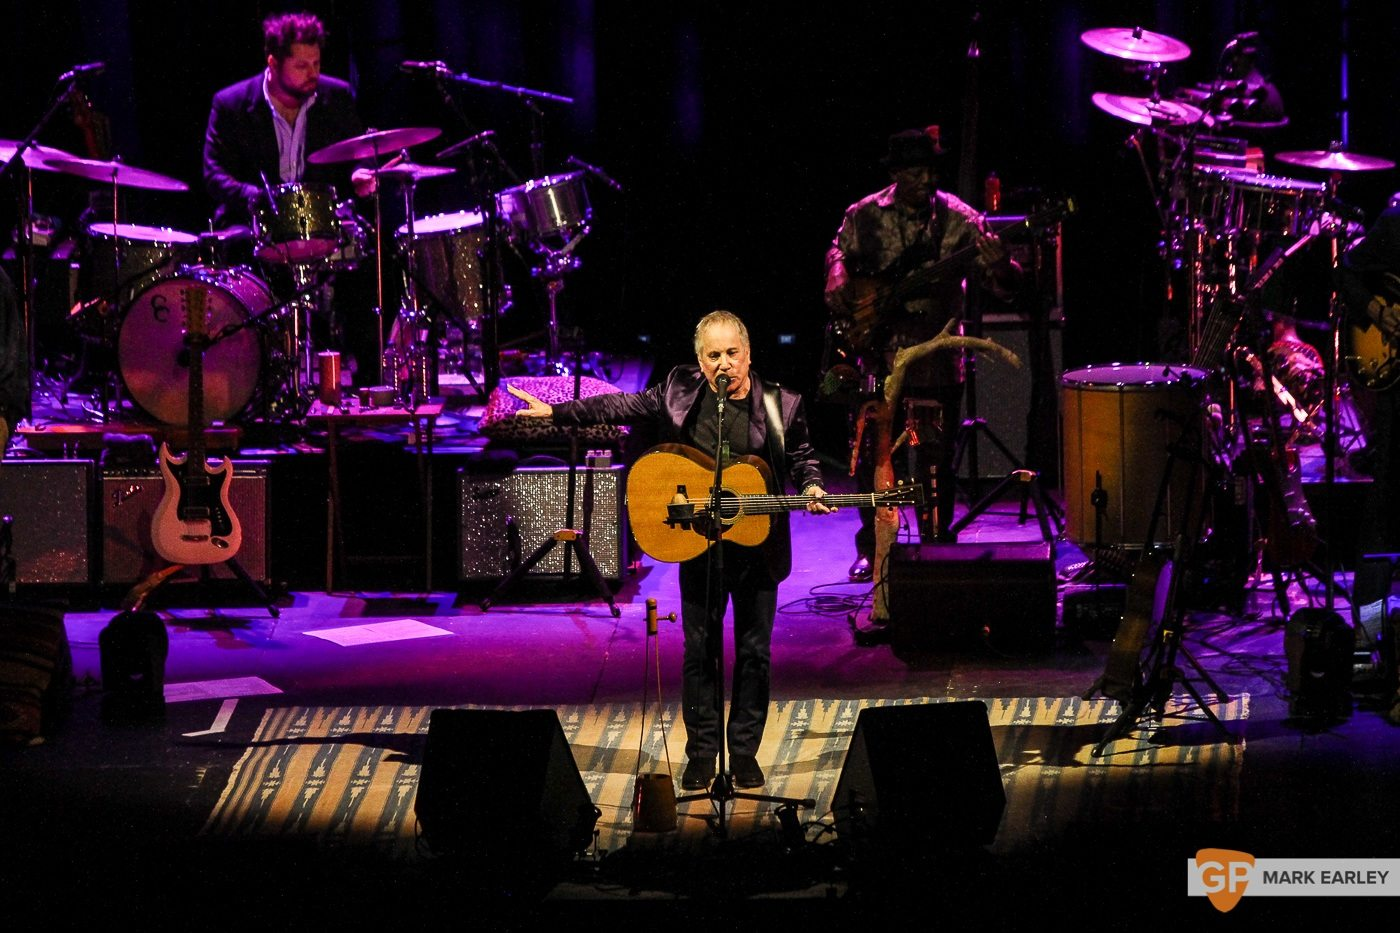 Photos of Paul Simon at the 3Arena by Mark Earley for GoldenPlec. Taken on November 21st in Dublin.